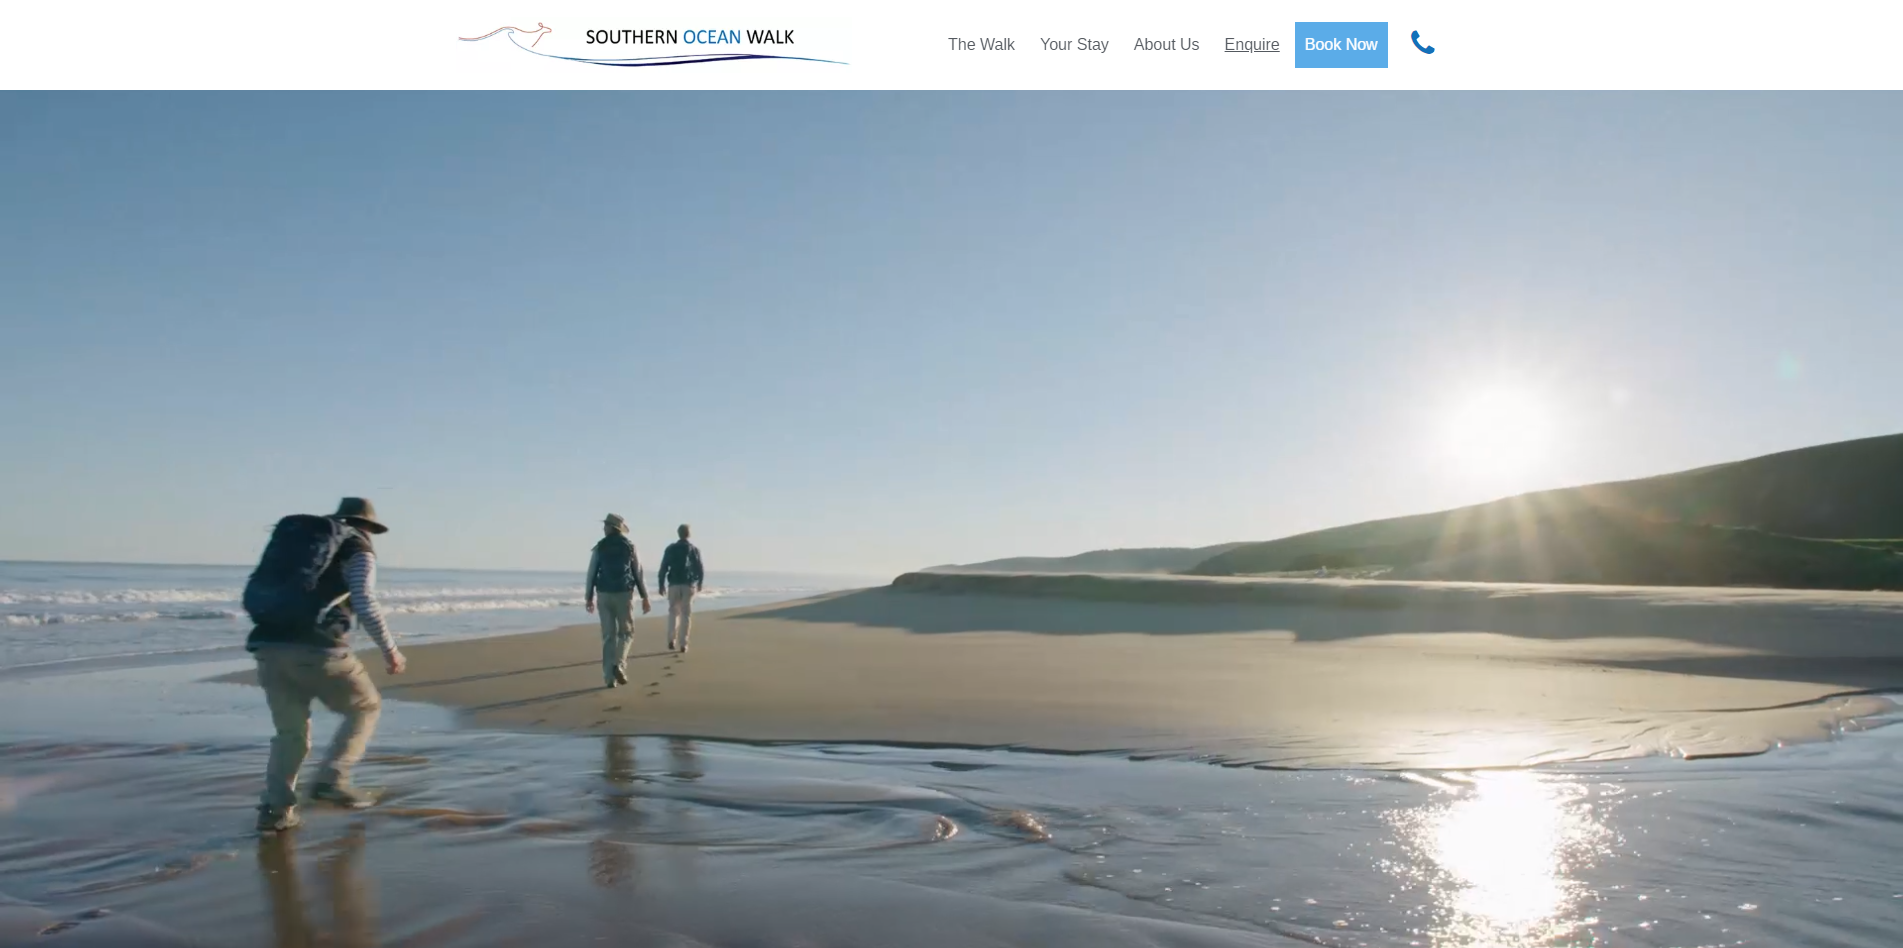 southern ocean walk website